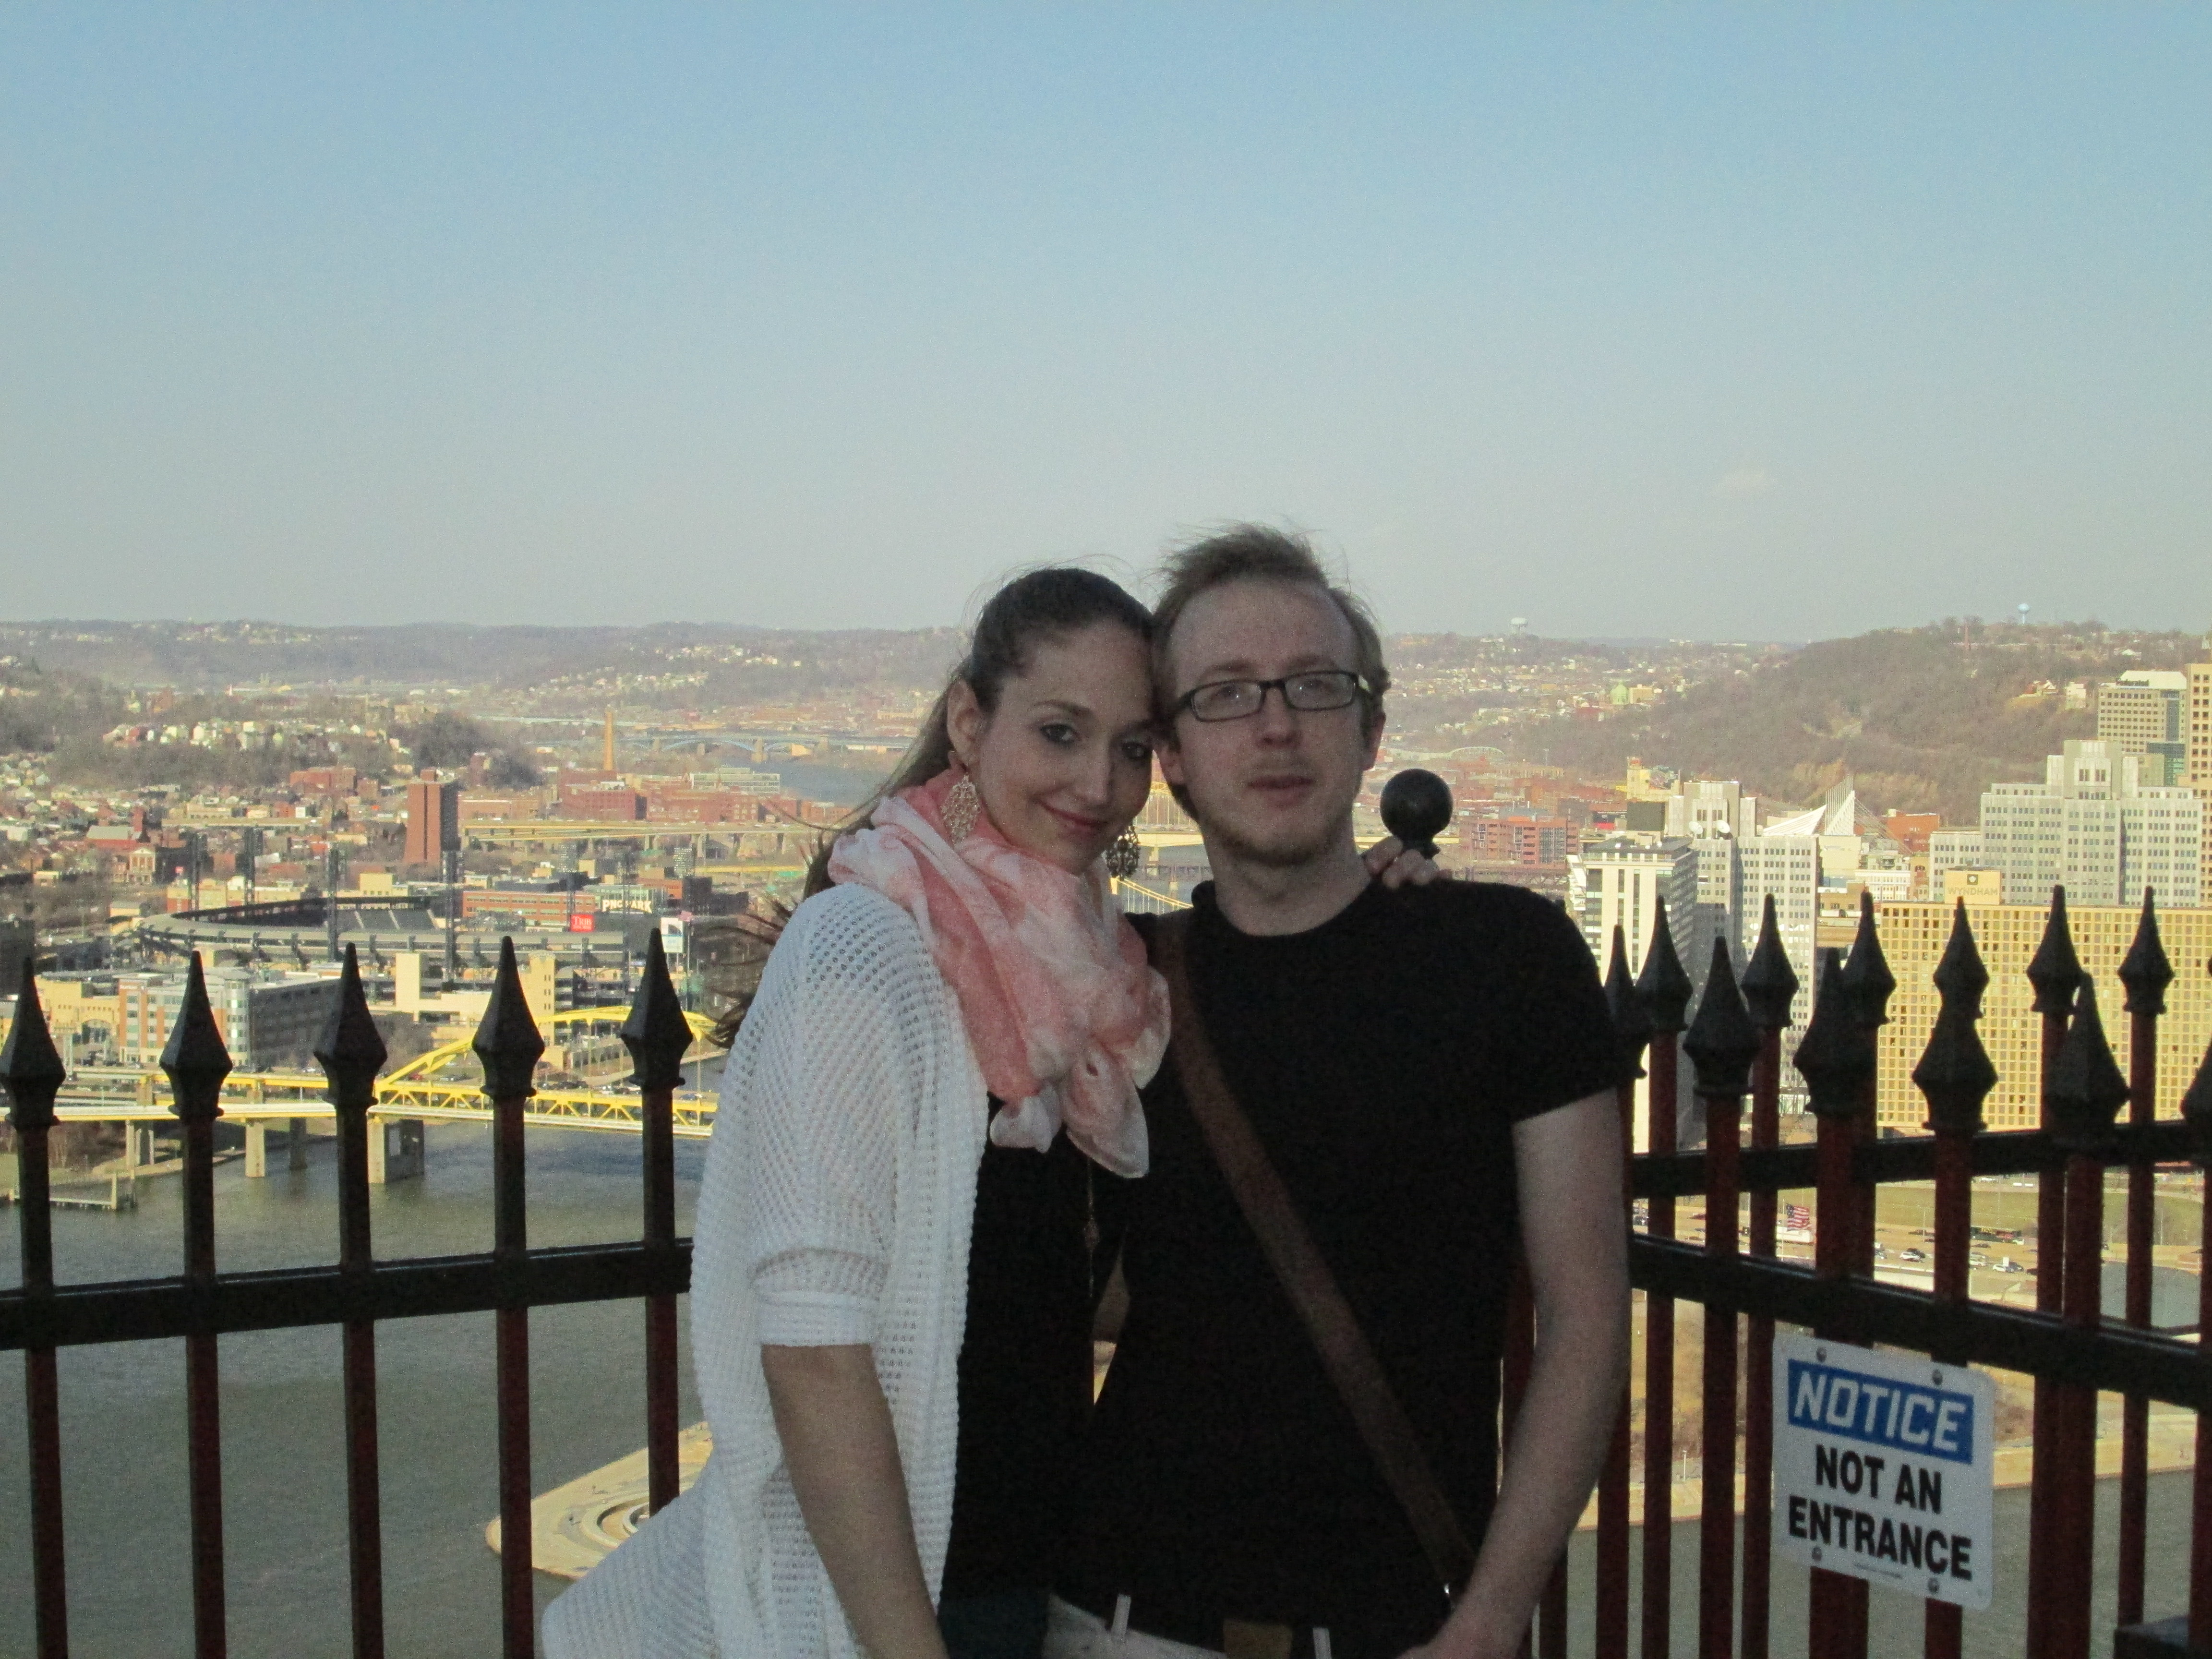 Ines Woide and her boyfriend Johannes in April 2014 at Mount Washington